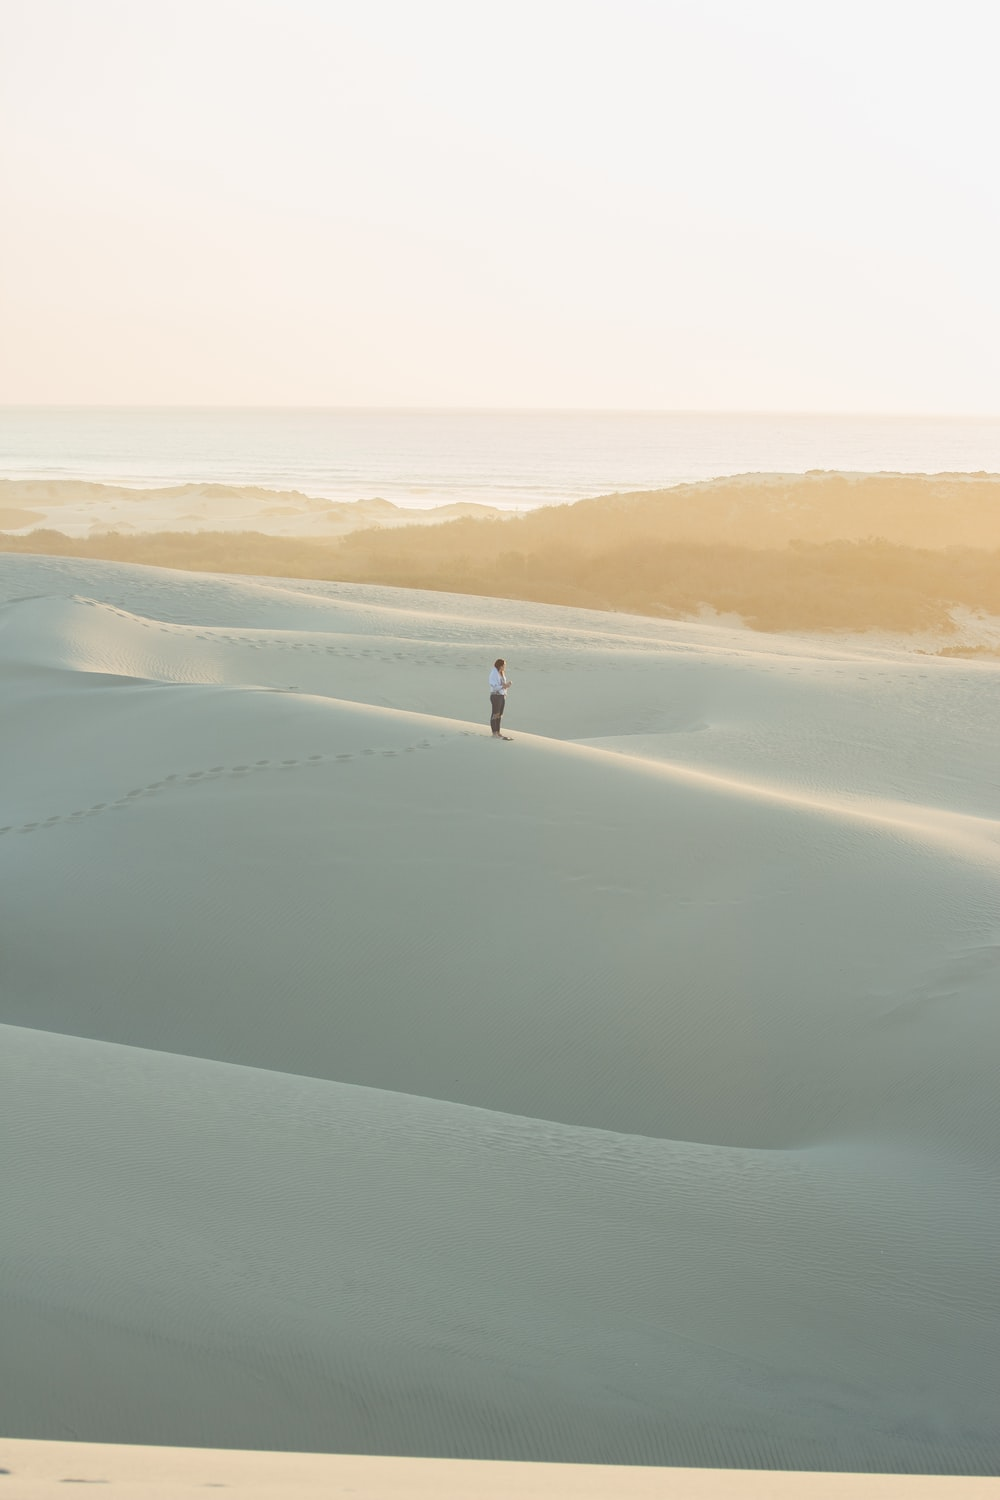 person standing on sand